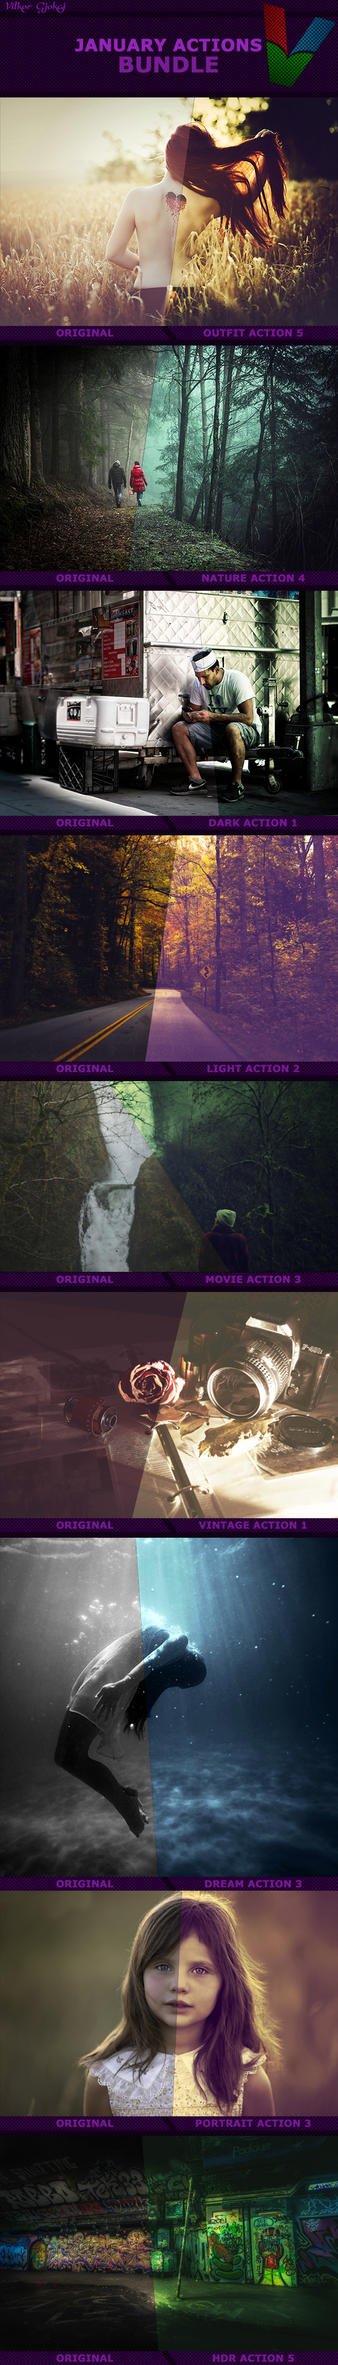 January Photoshop Actions BUNDLE by ViktorGjokaj